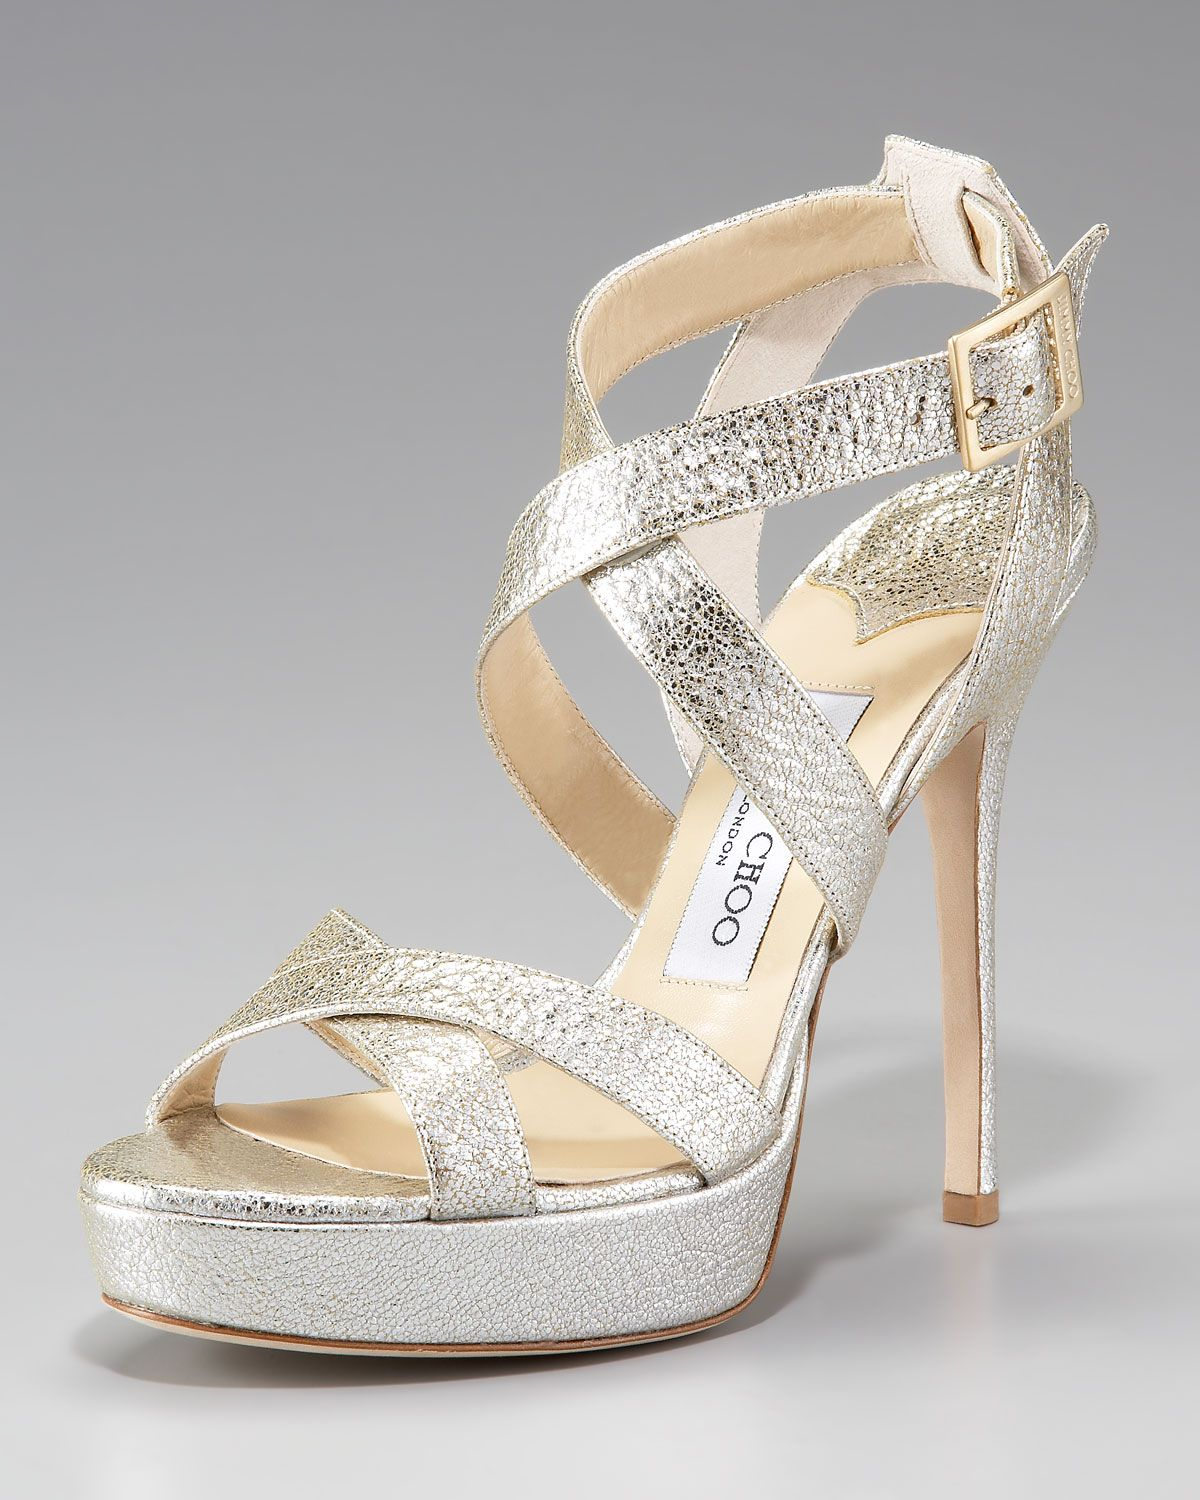 2a50de29e4e7 Jimmy Choo Vamp Crushed Metallic Platform Sandal in Gold (champagne ...